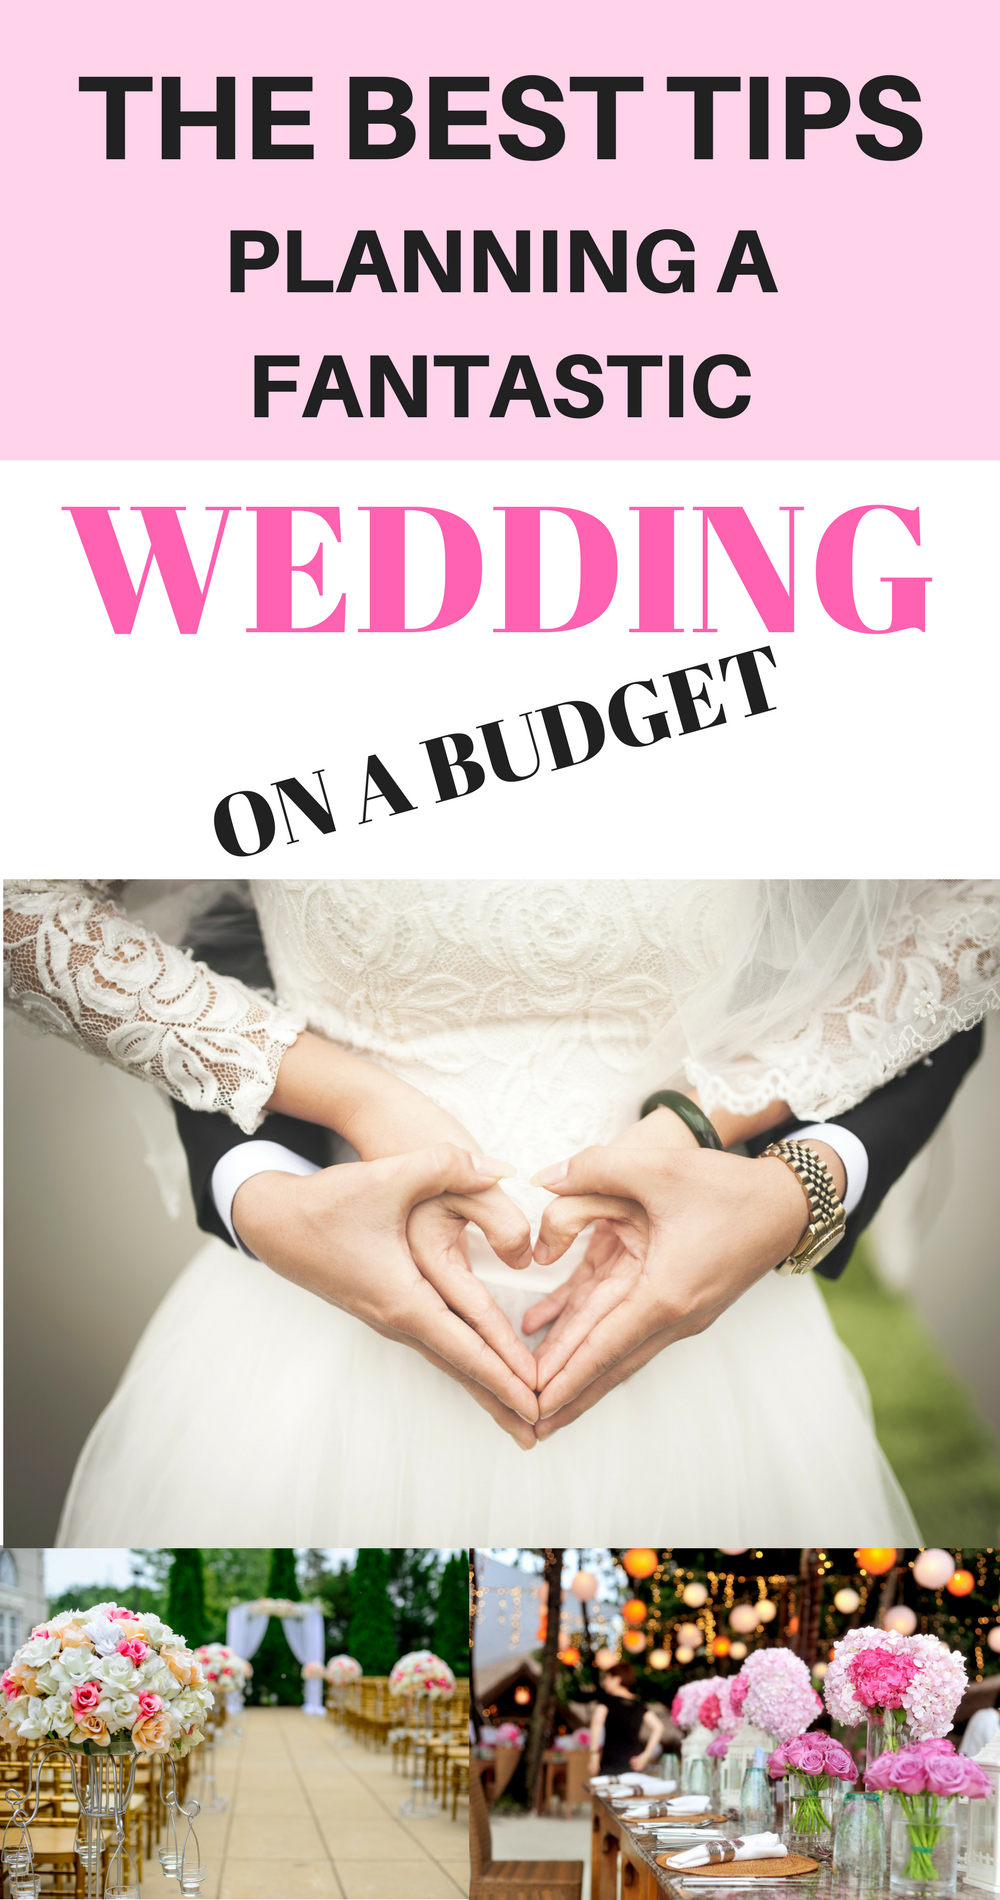 All the Best Tips on Planning a Fantastic Wedding for Cheap